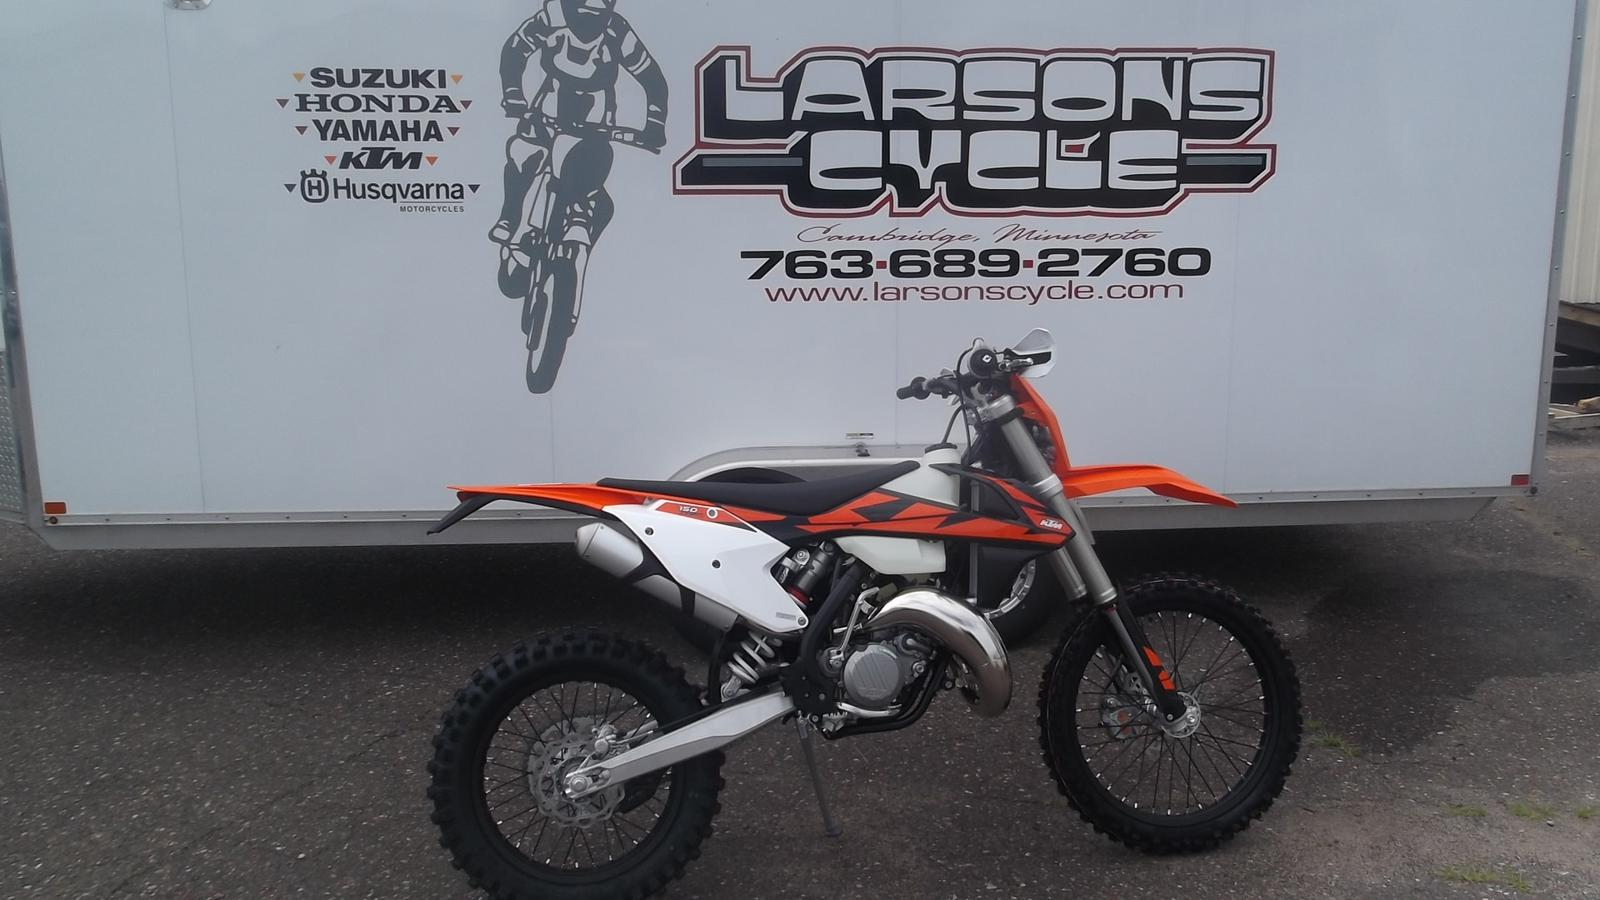 2018 ktm 150 xc-w for sale in cambridge, mn | larson's cycle inc